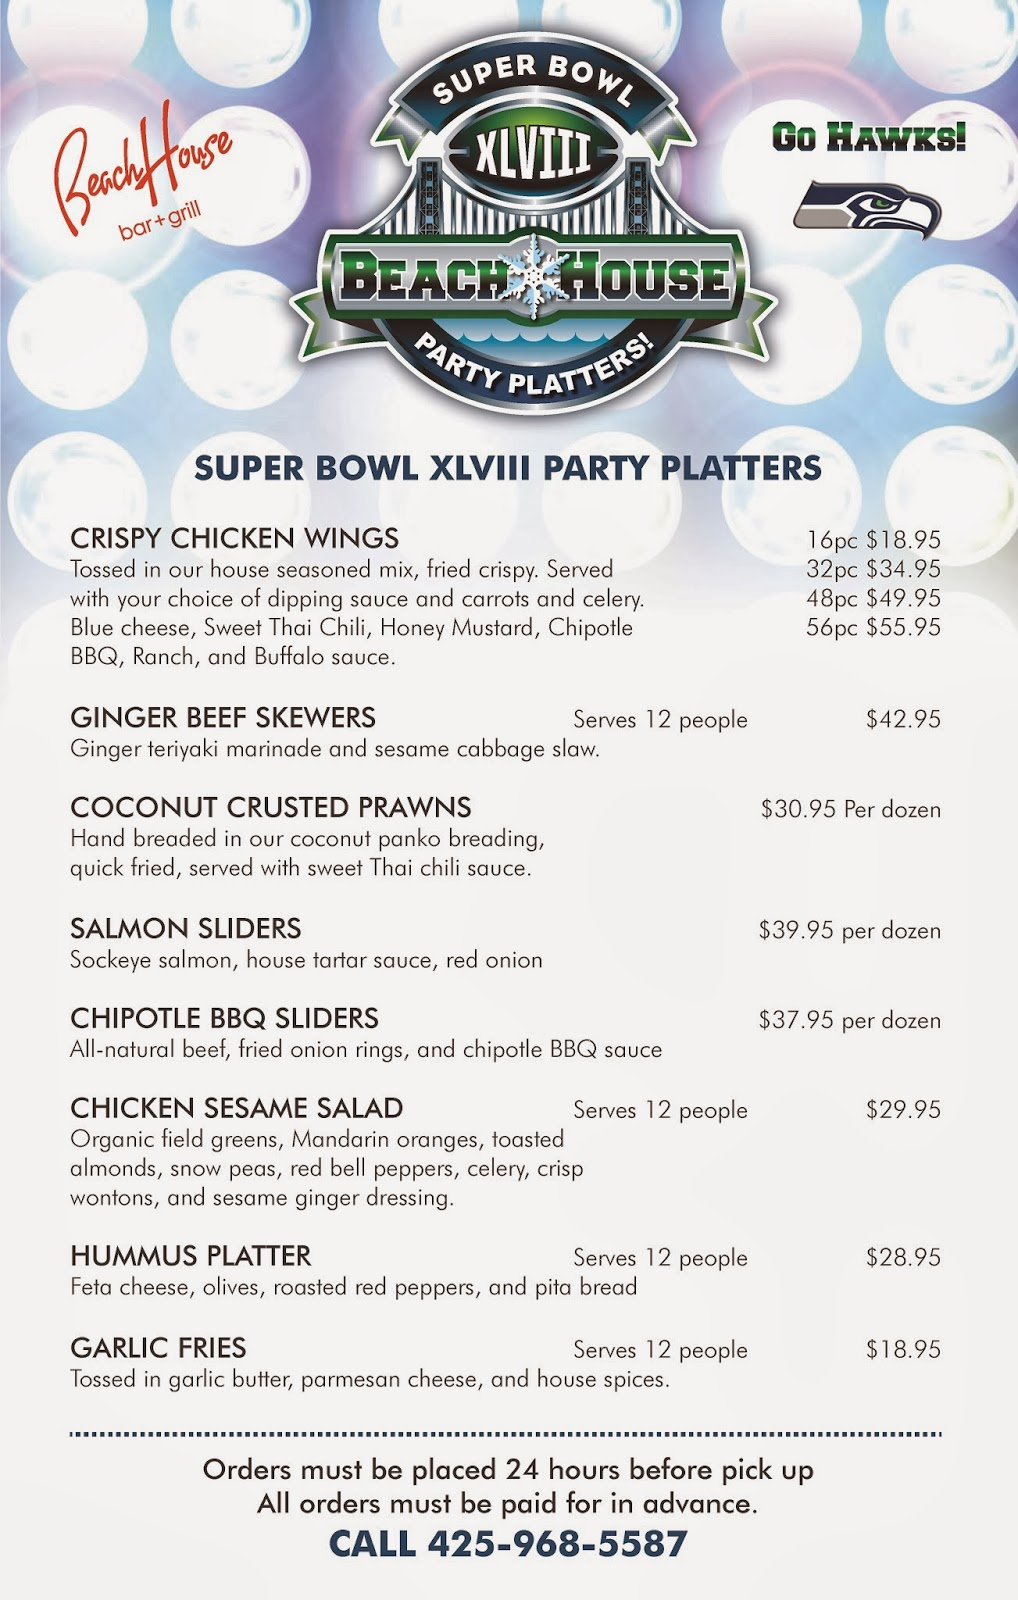 Super Bowl Party Platters Menu